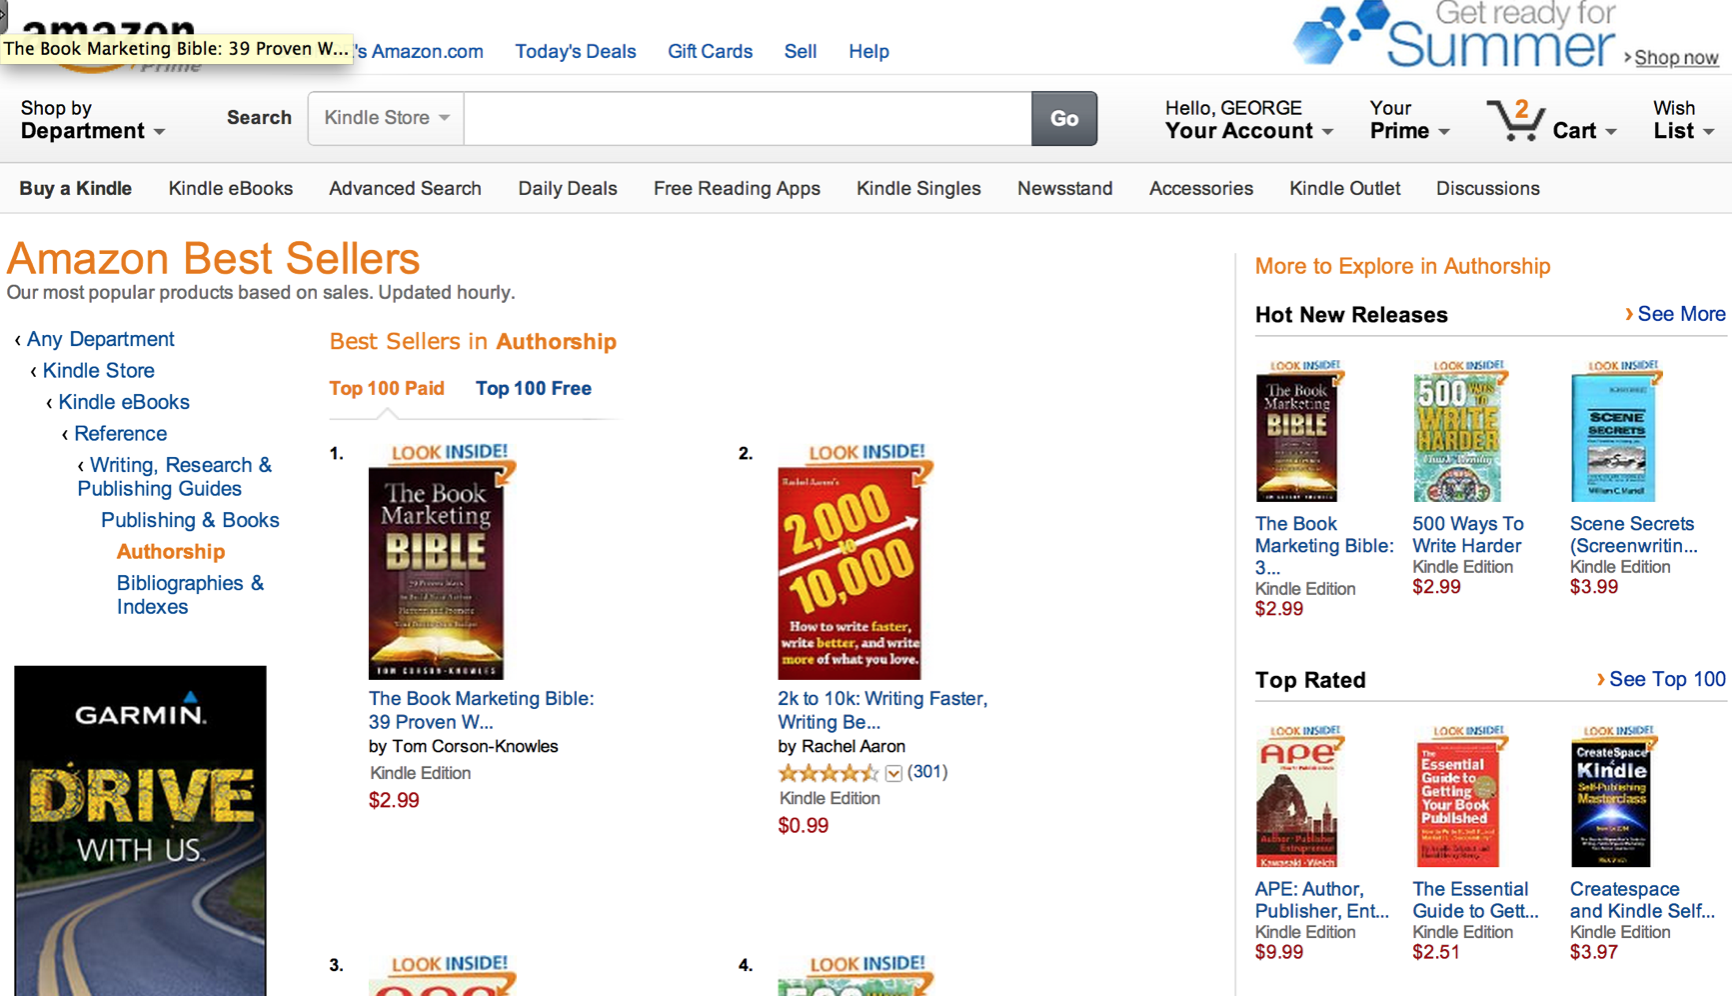 Book Marketing Bible #1 Amazon Bestseller